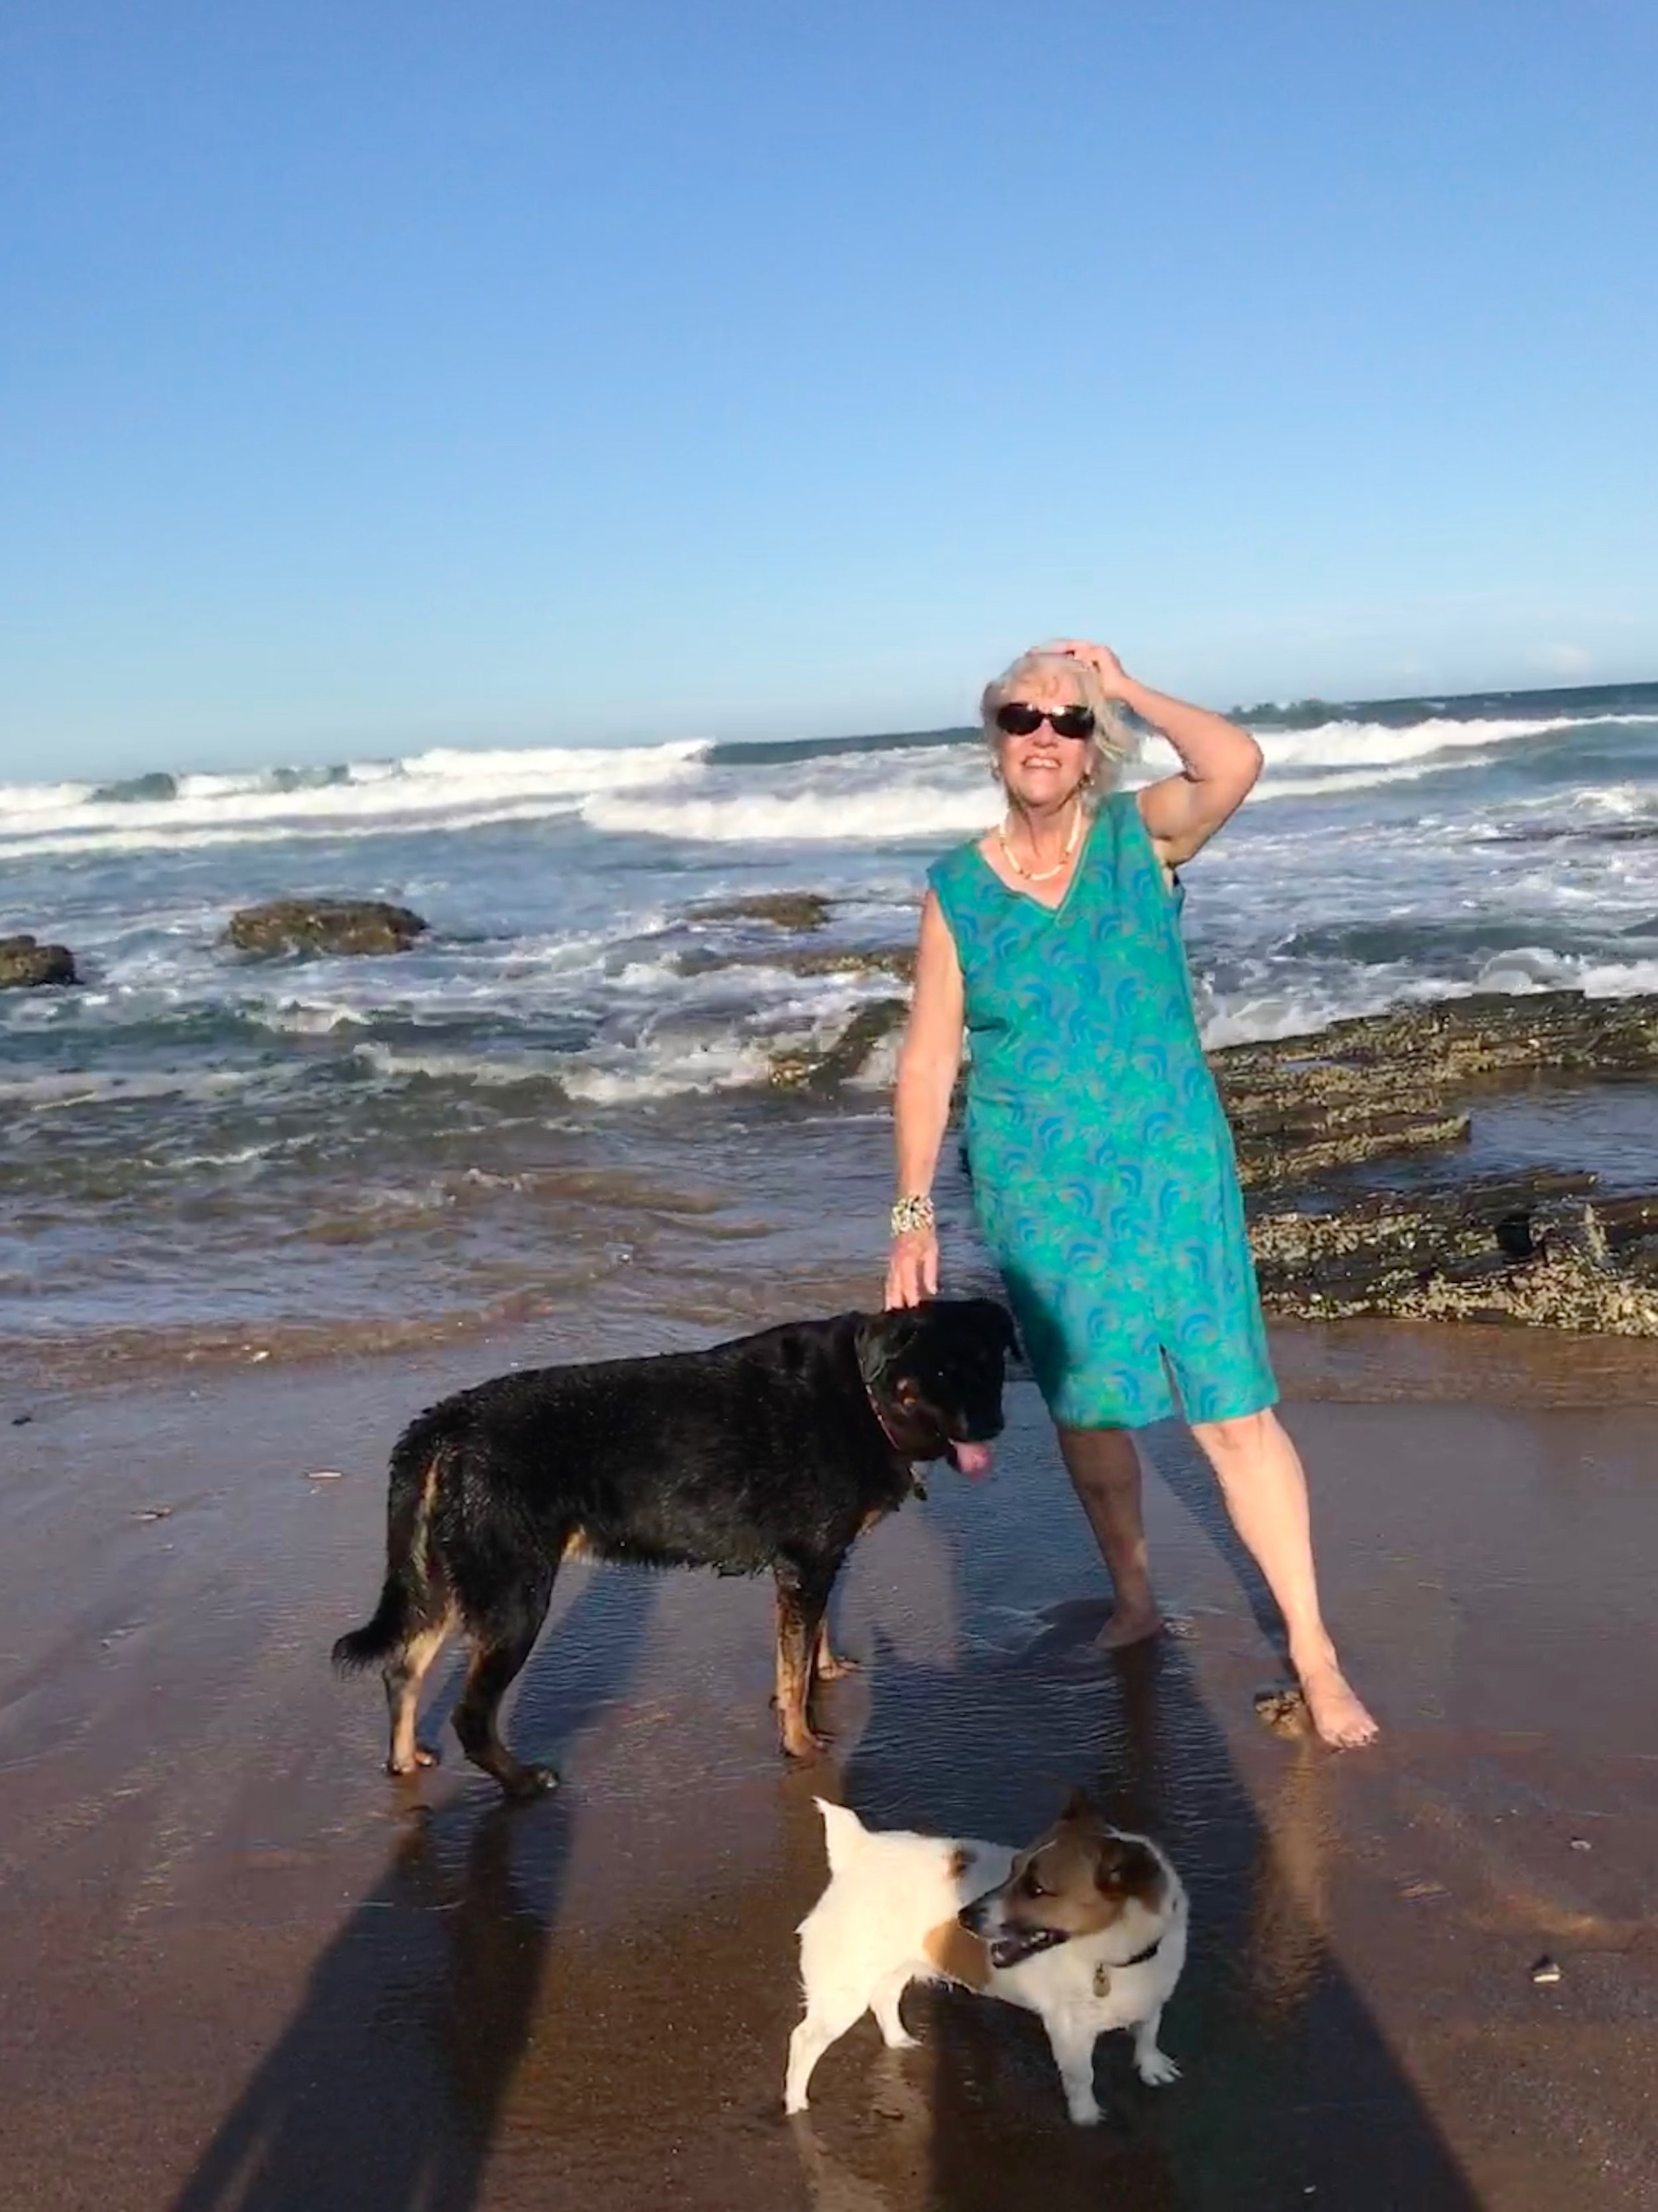 With the dogs at the cottage at Clansthal in Kwa Zulu Natal